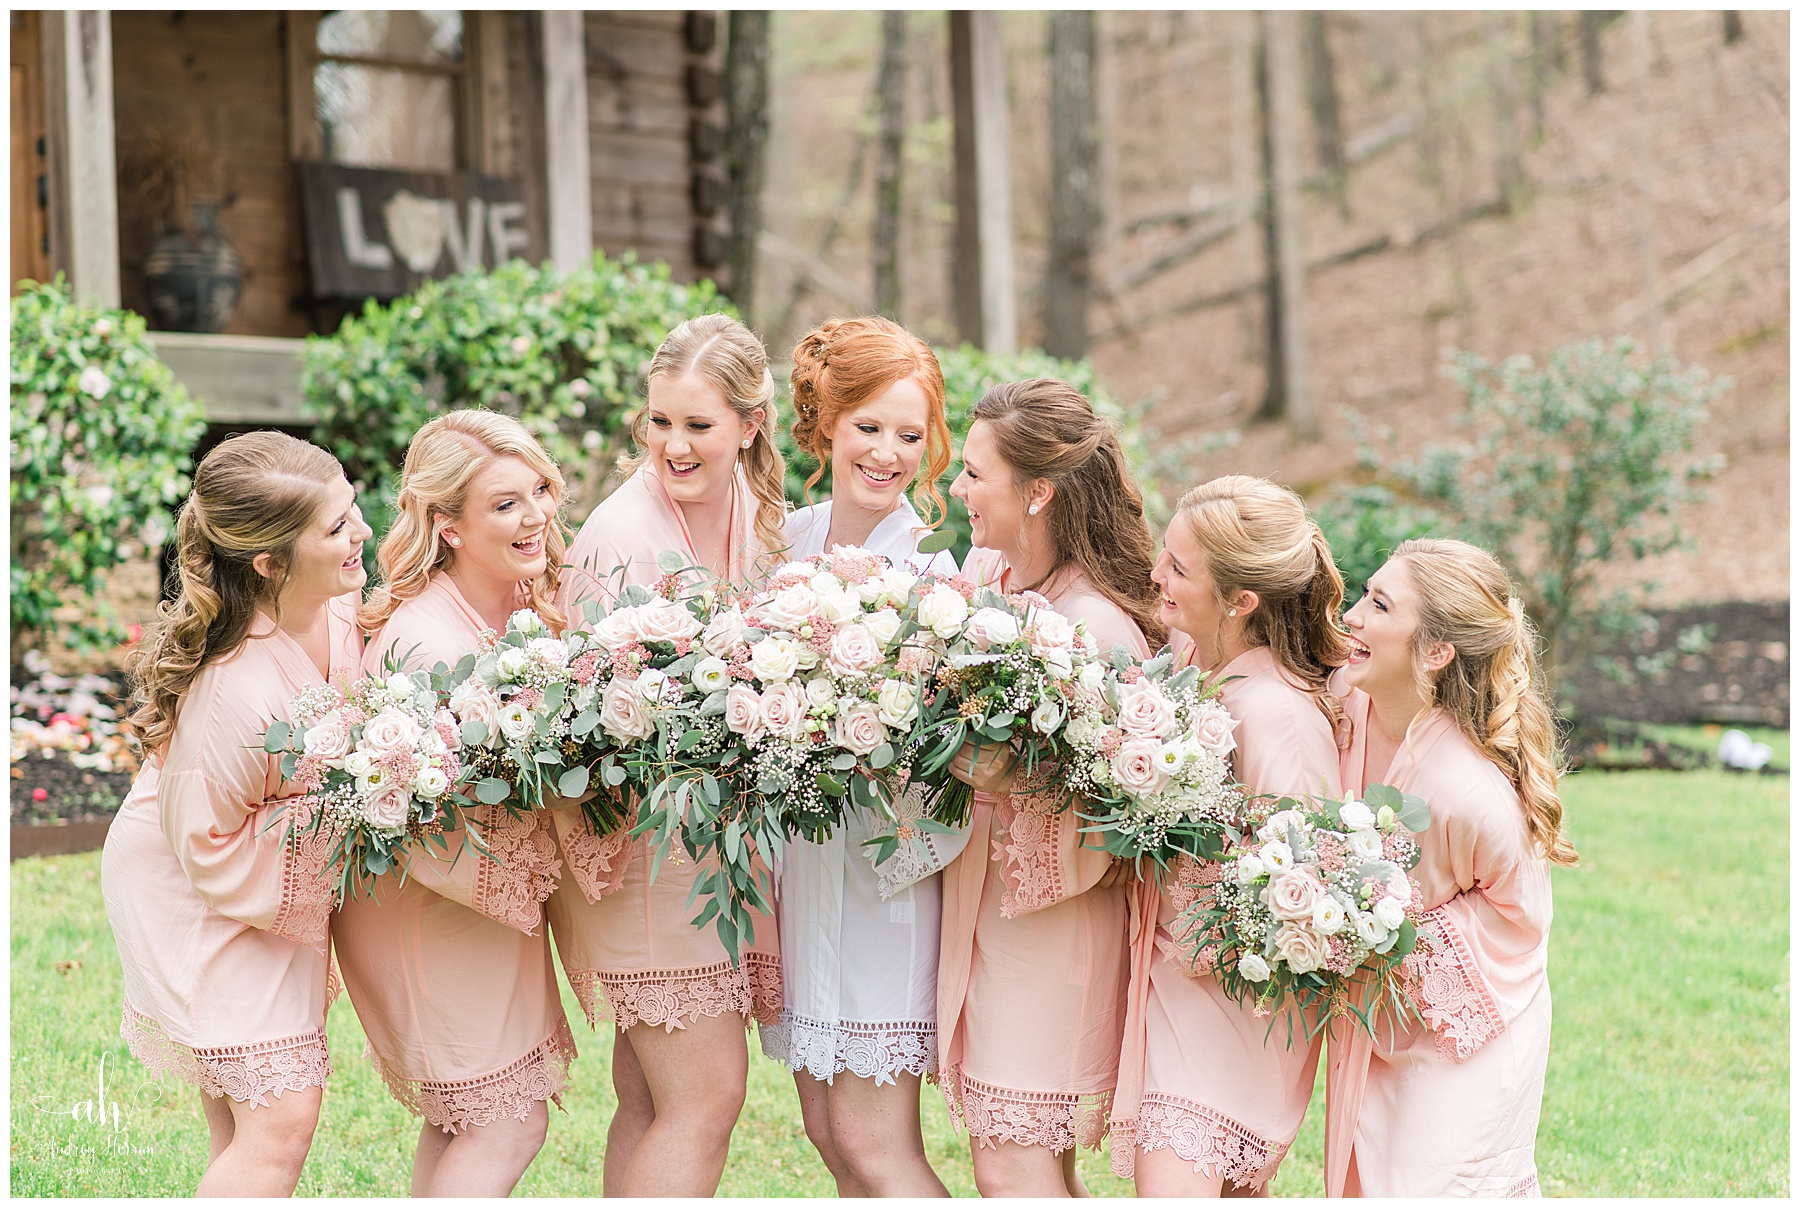 In the Woods, In the Woods Wedding, In the Woods Rockmart Georgia, Southern Wedding, Lake wedding, Lakeside wedding, North Georgia Wedding, North Georgia Wedding Photographer